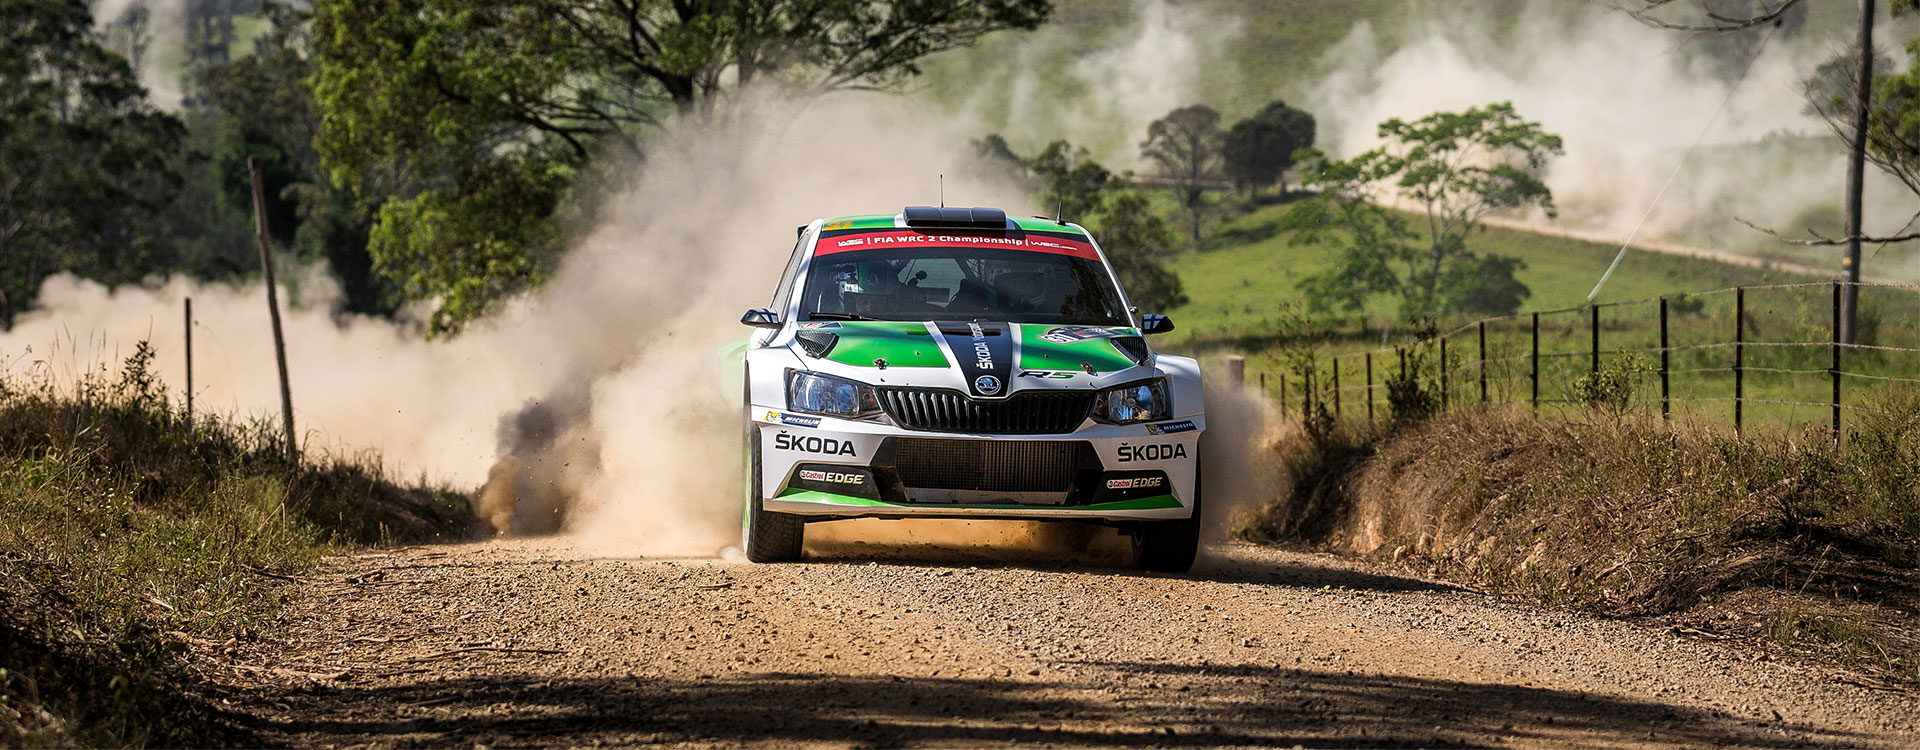 WRC Australia: Esapekka Lappi with commanding lead after the first day